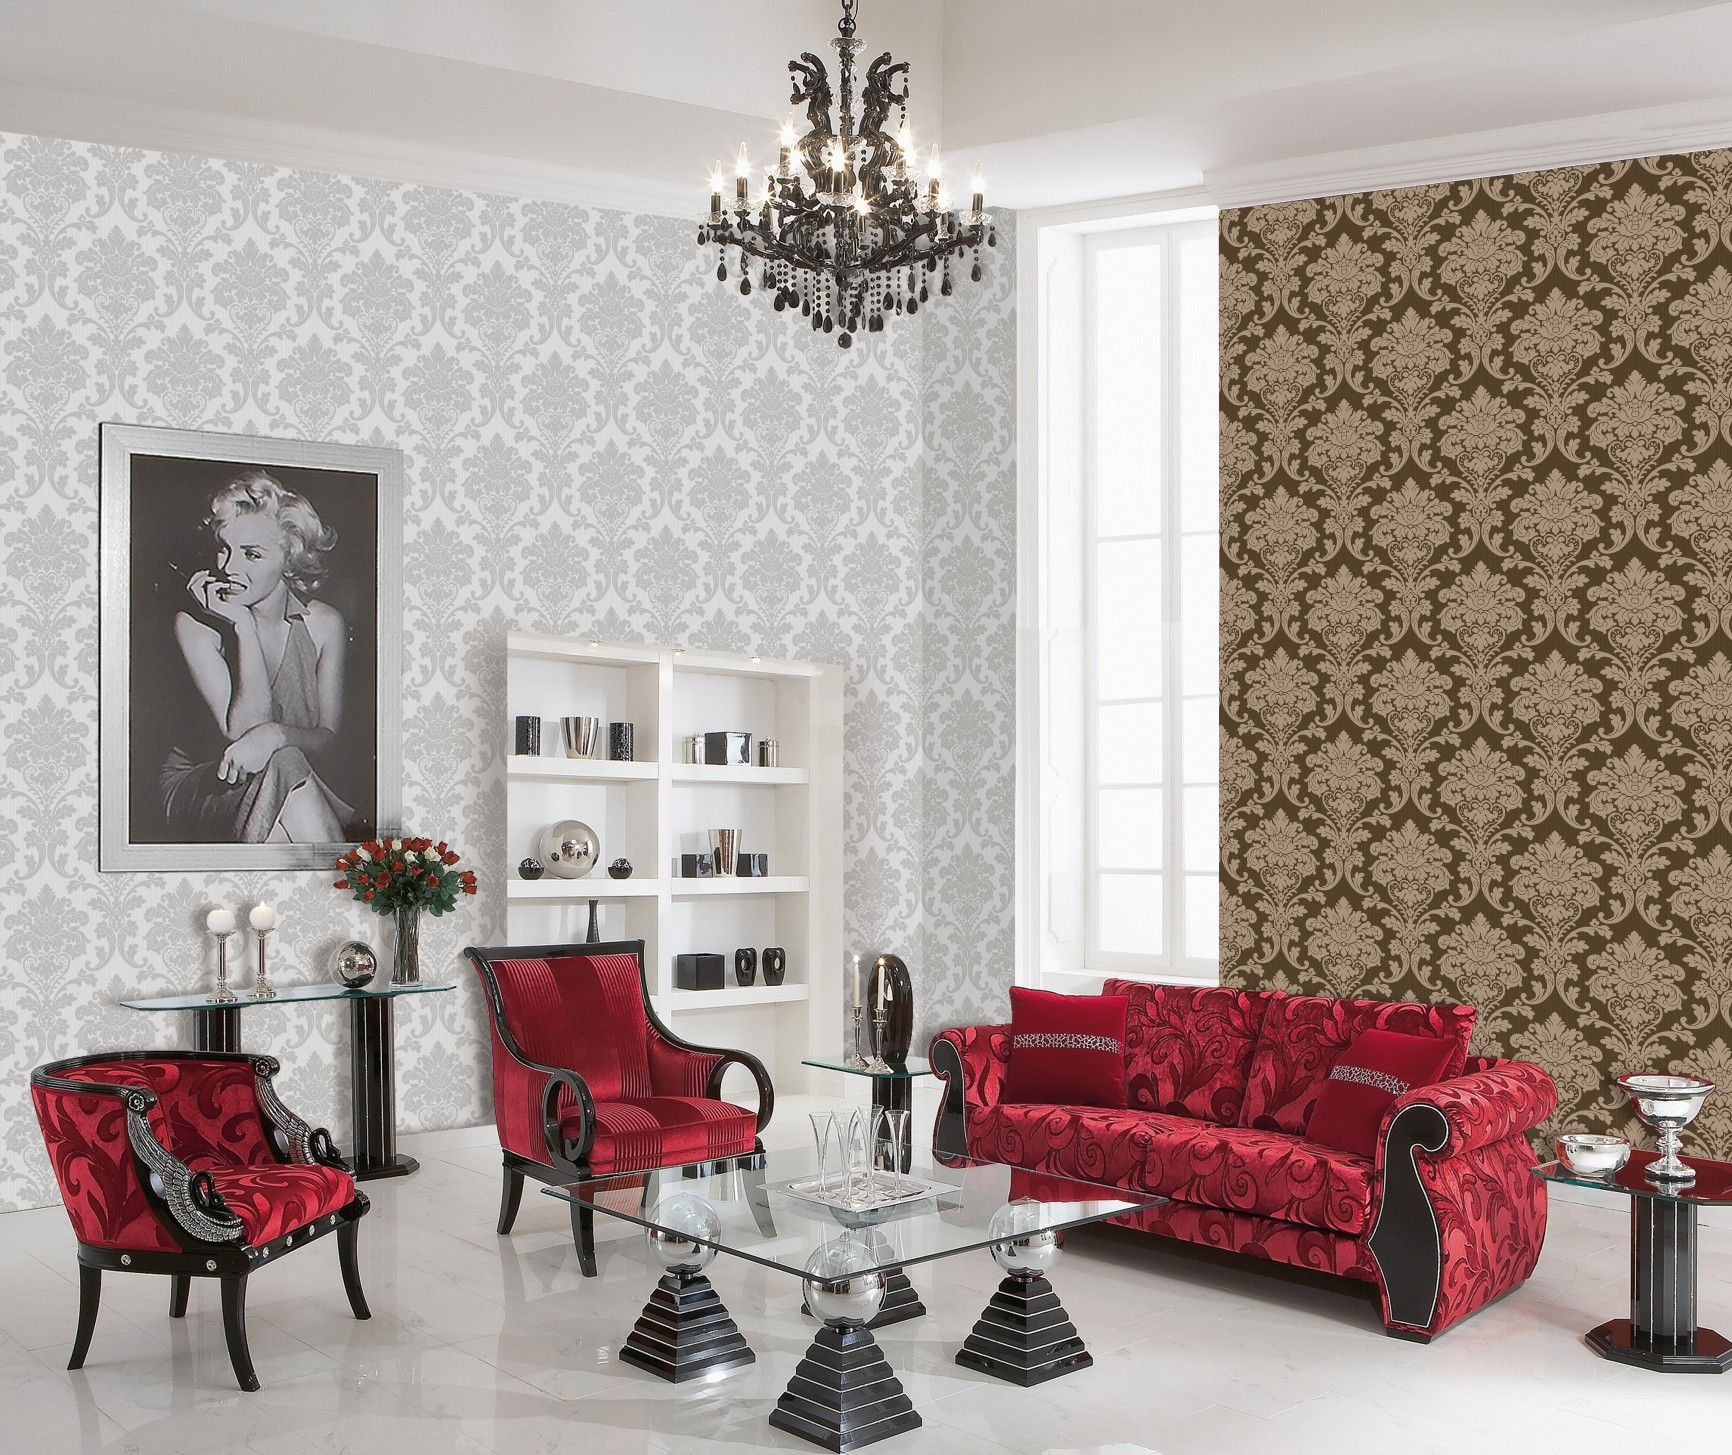 Most Widespread Types of Wallpaper. Non-woven type in the combined interior